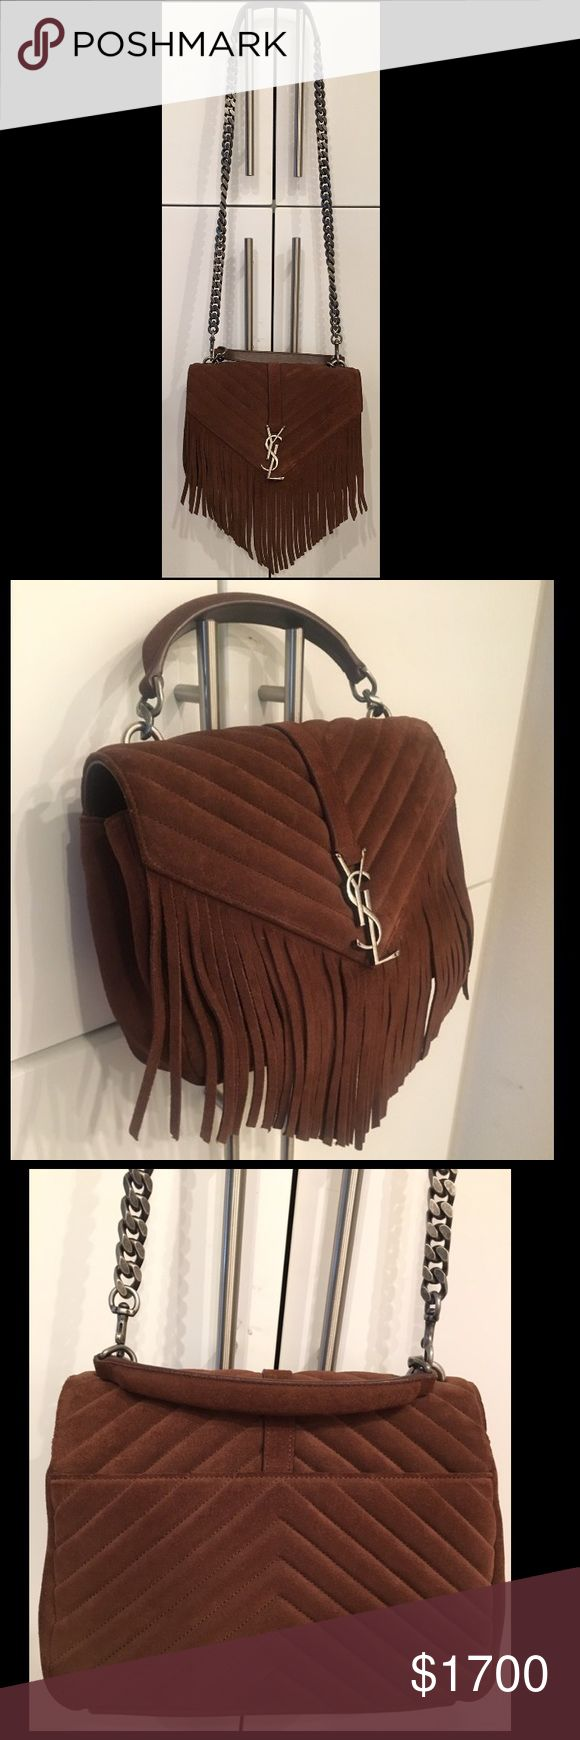 """YVES SAINT LAURENT FRINGE SHOULDER BAG This fringed update to Saint Laurent's 'Classic Monogram' shoulder bag is the investment piece that's topping everyone's wish list this season. Beautiful brown quilted suede and gunmetal-grey hardware. Wear it for a sophisticated finishing note, no matter what the look or season.  *NEW* in FLAWLESS Condition- Purchased at Neiman Marcus for $2,450 (+tax) (price tag still attached)  DETAiLS: Height 16cm-6.5"""" Width 26cm-10"""" Depth 7cm-3"""" Length shoulder…"""